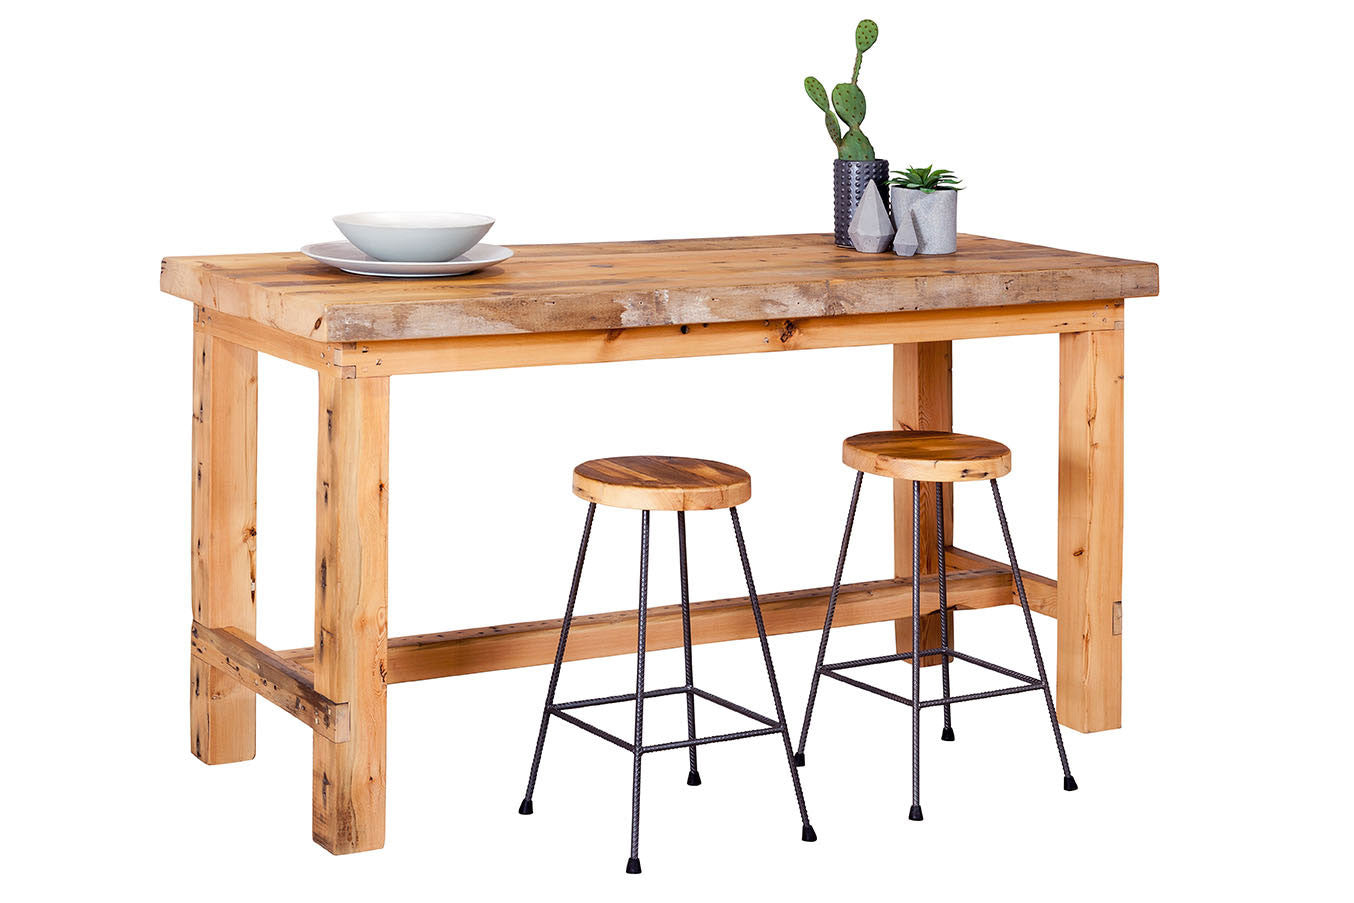 Plaistow Recycled Solid Baltic Timber Bar Table Bespoke